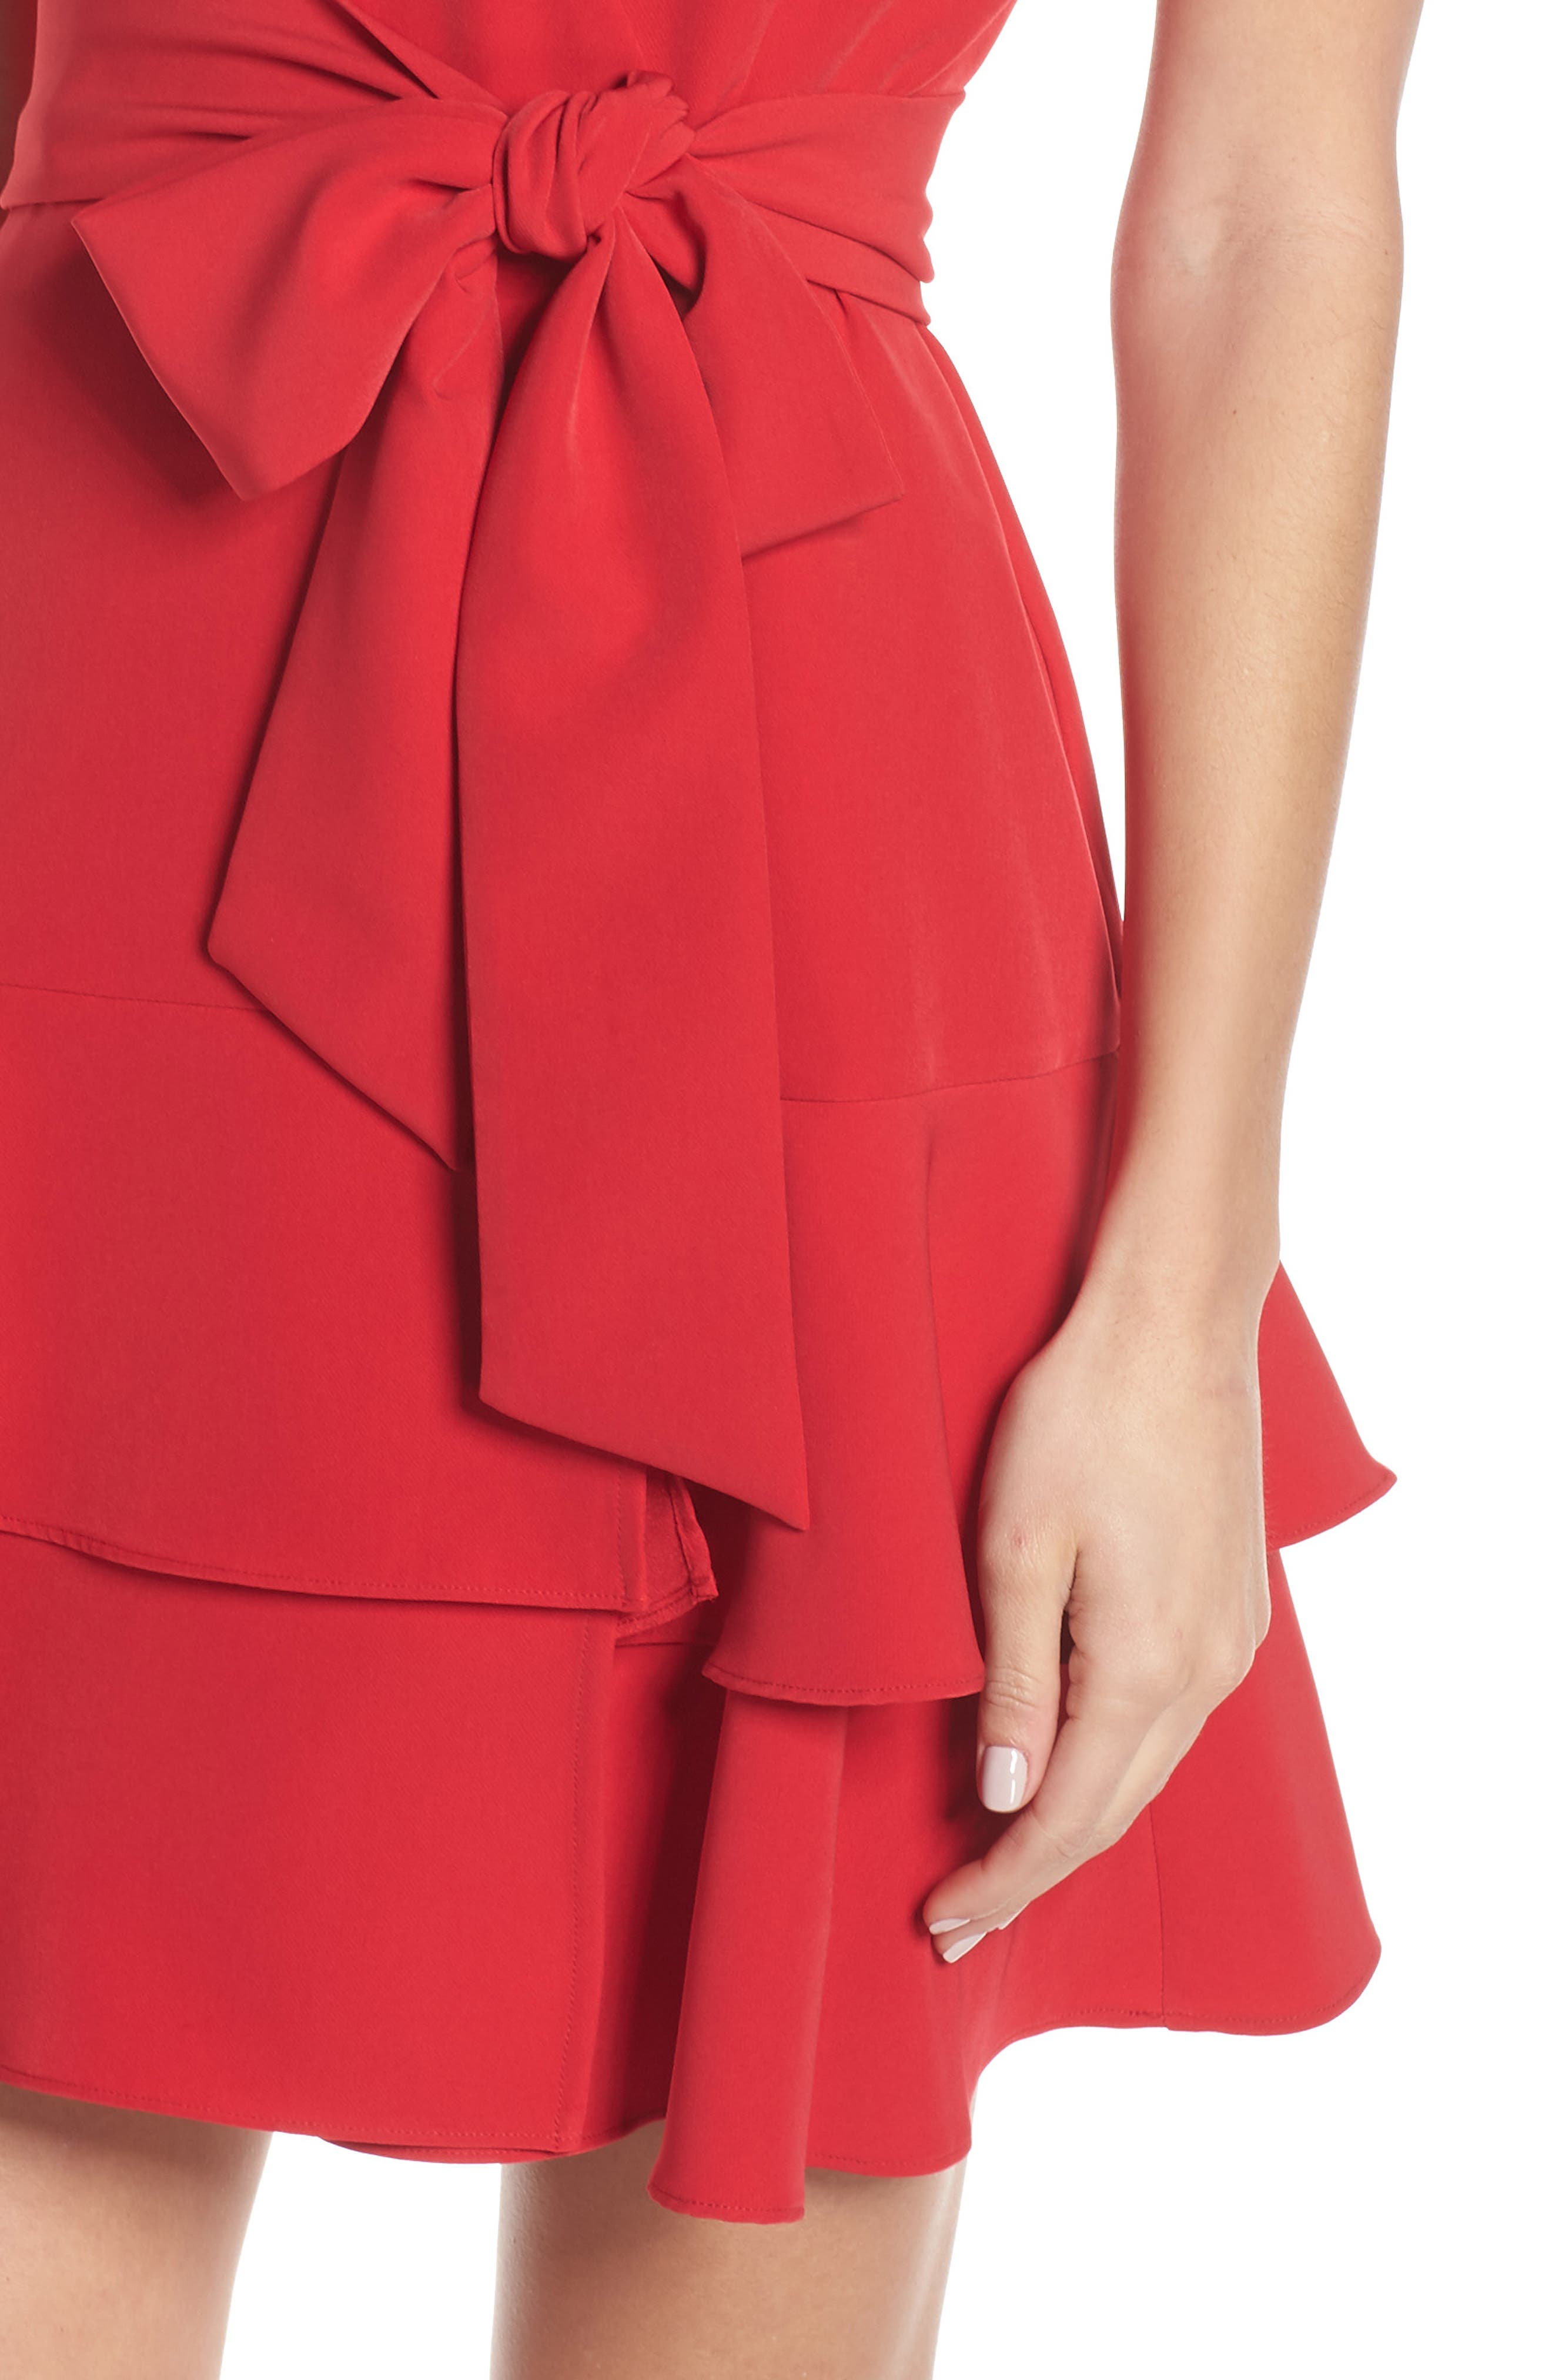 CHARLES HENRY, Ruffle Tiered Wrap Dress, Alternate thumbnail 5, color, SCARLET